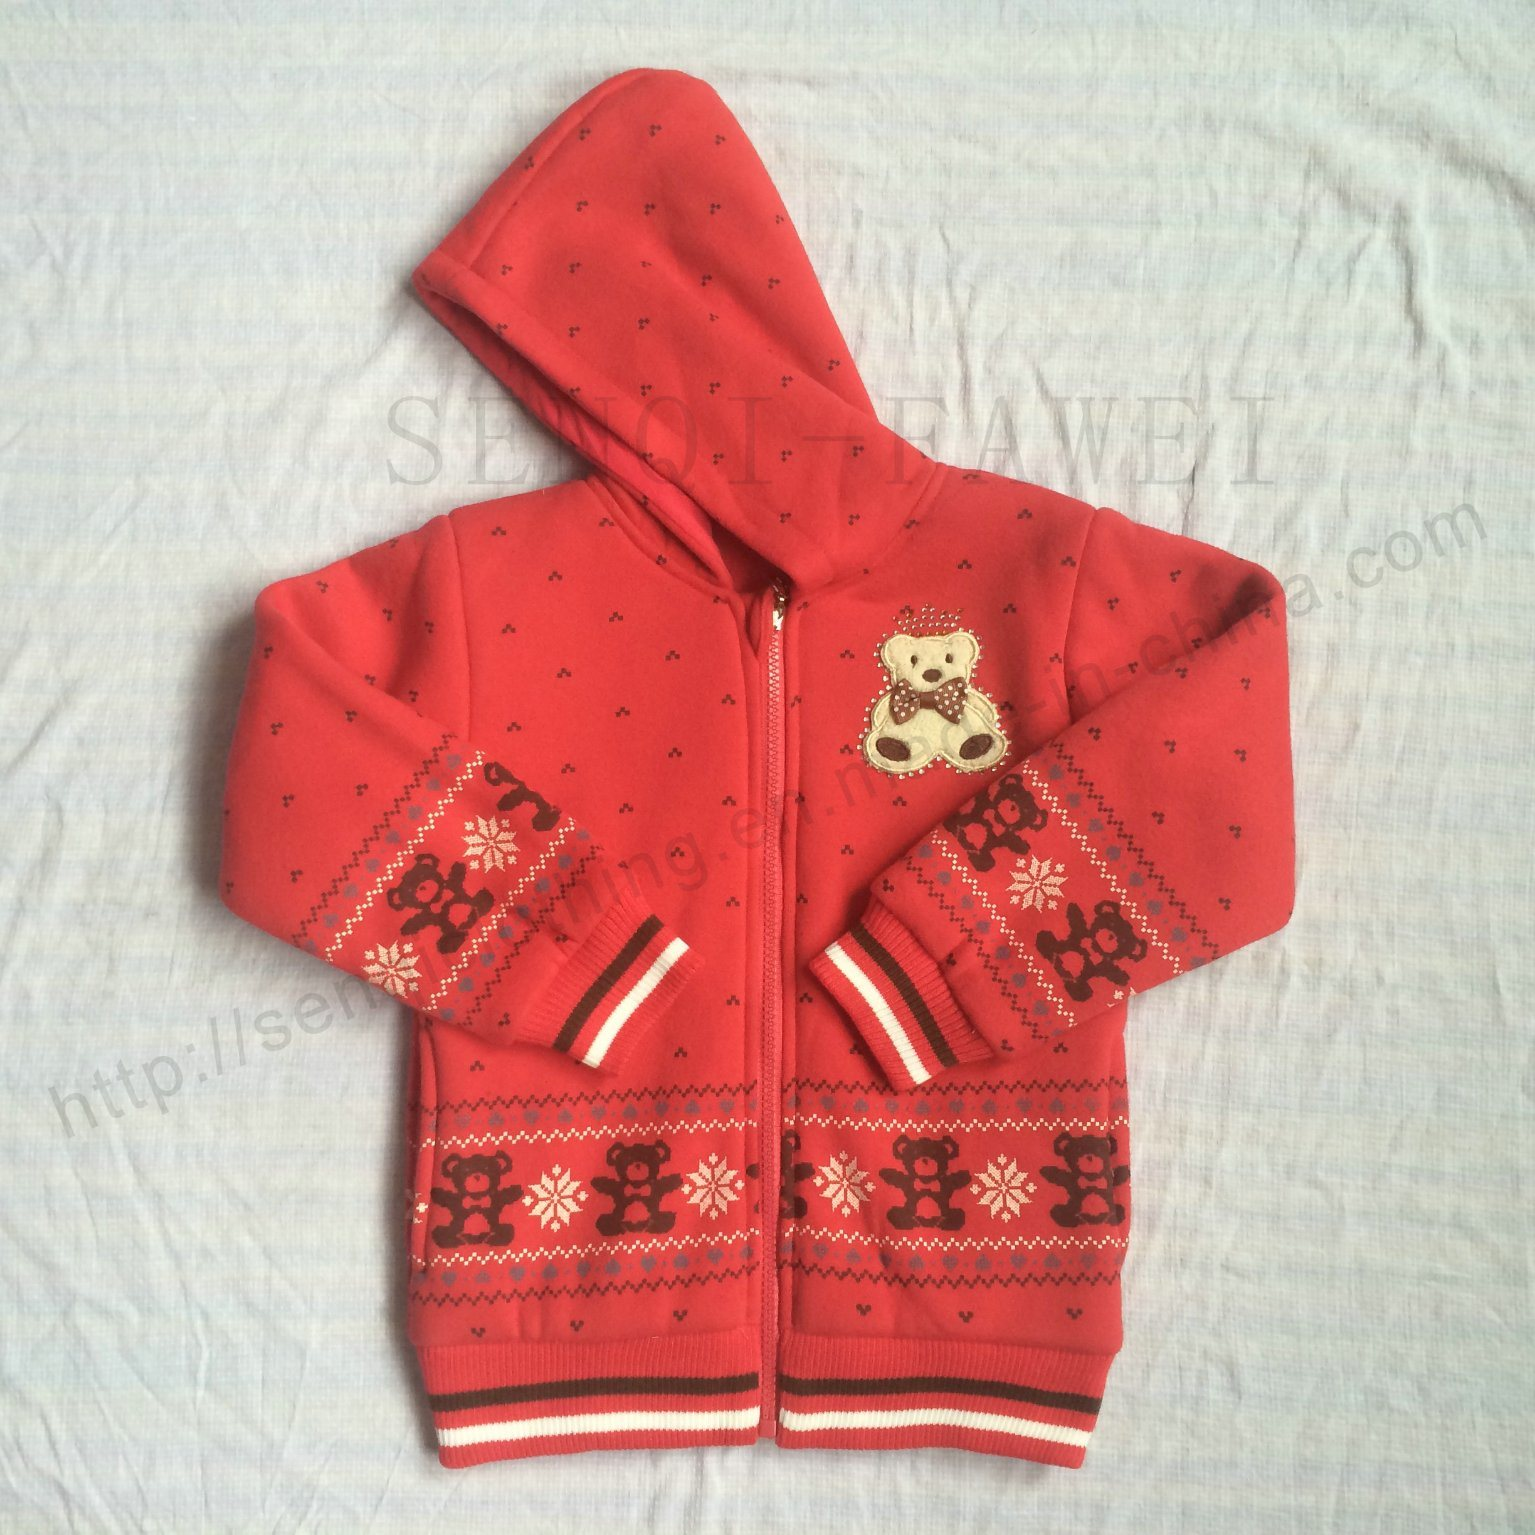 Fashion Red Girl Hoodies Clothes in Kids Sport Coat Sq-6711